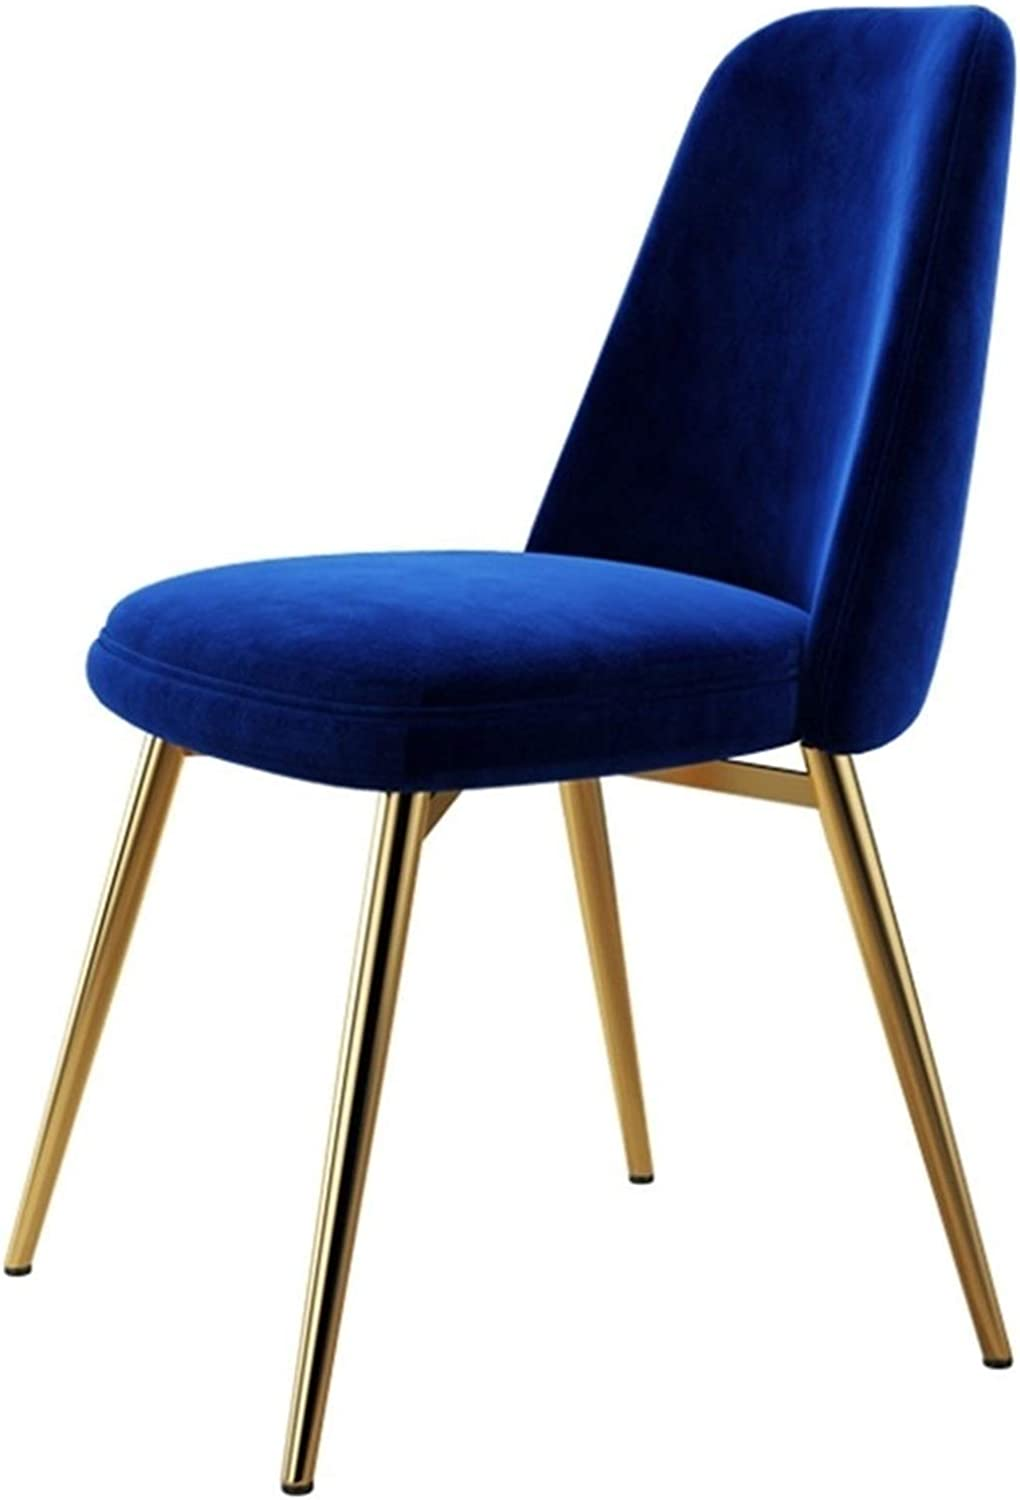 Velvet Dining Chairs Scandinavian Kitchen Counter Lounge Chair Living Room Corner Chair Tub Chair with Metal Legs and Backrest (Color : Blue, Size : 1pcs)